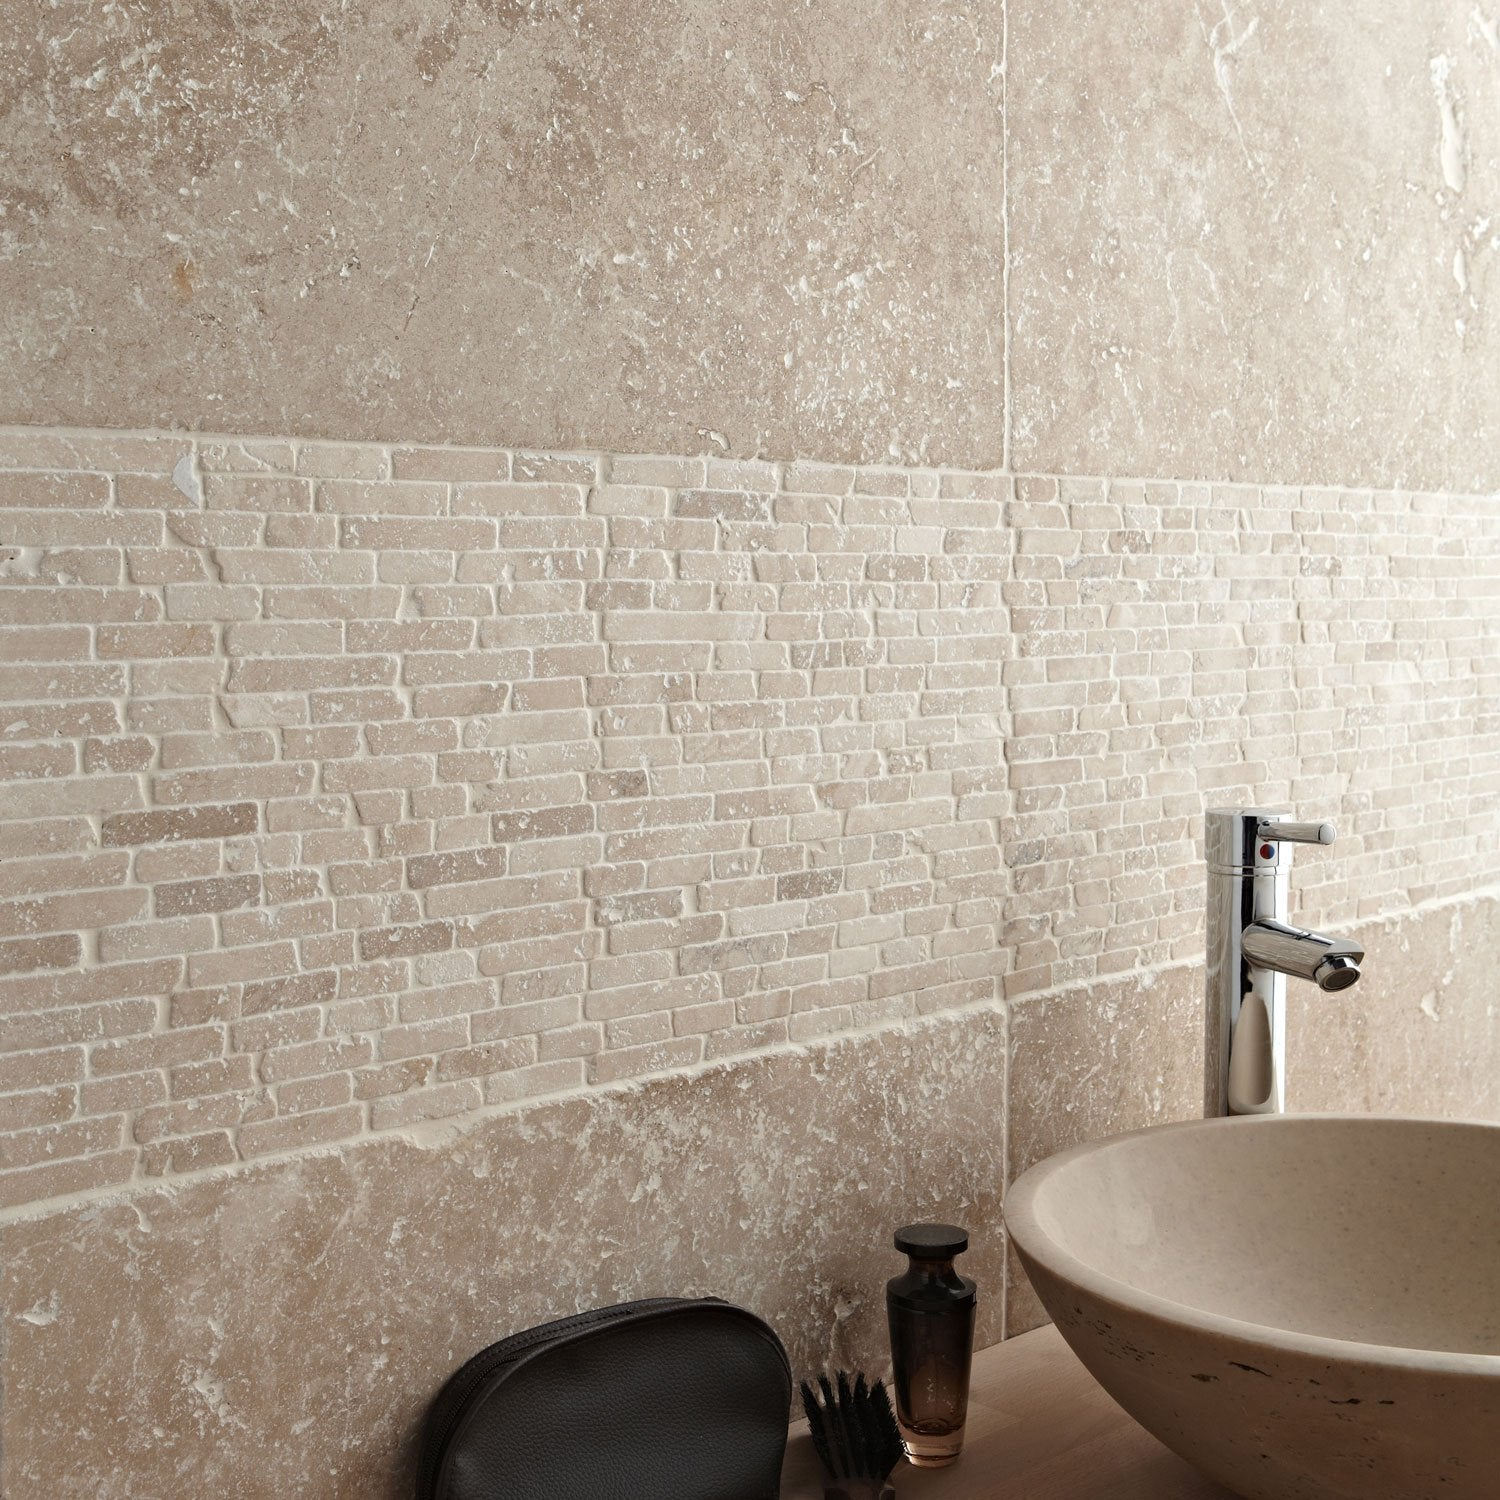 Travertin sol et mur beige effet pierre travertin x for Pose salle de bain leroy merlin